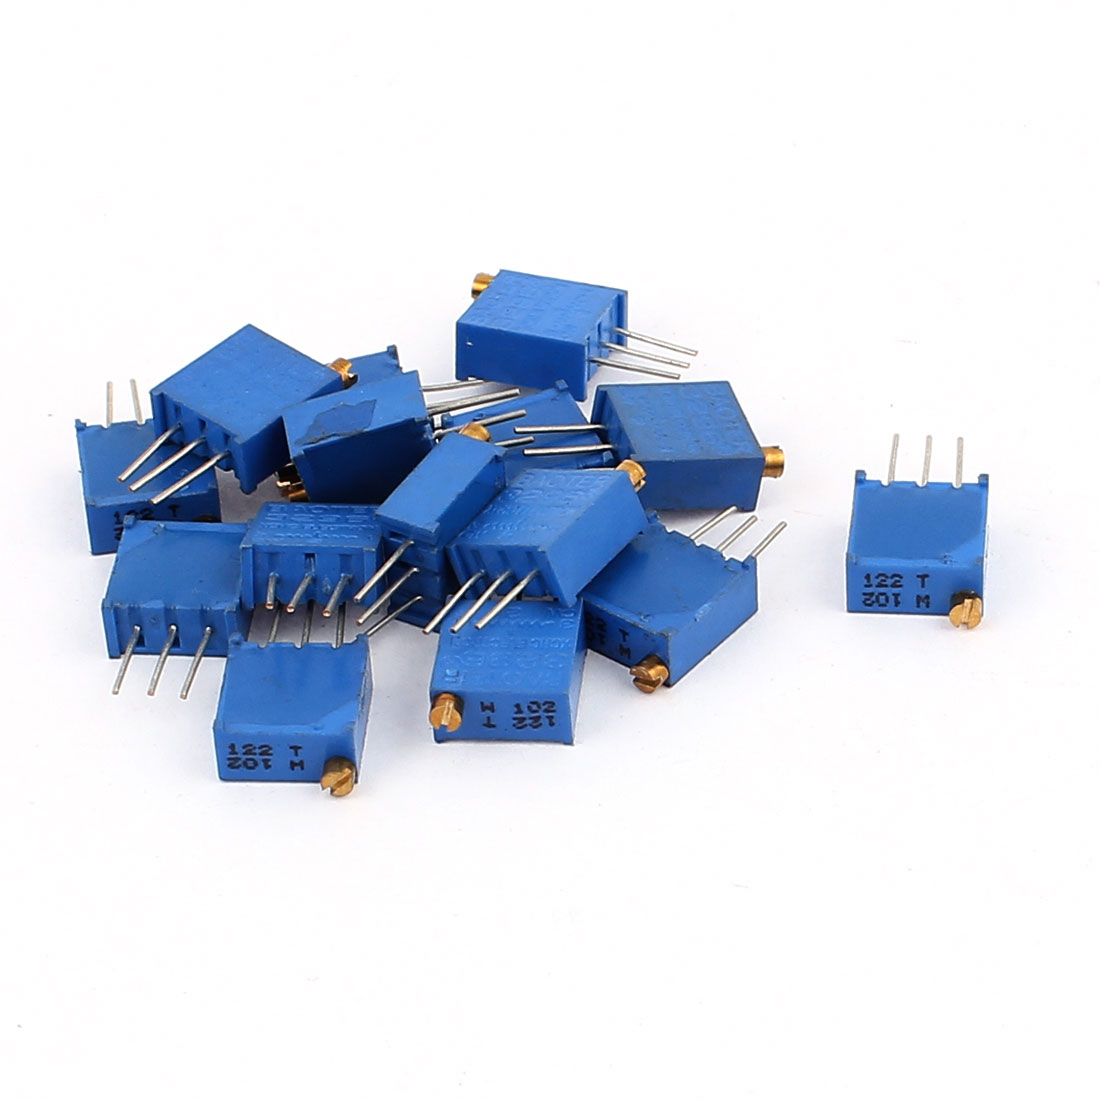 15 Pcs 3296W 1K ohm Multiturn Potentiometer Pot Variable Resistor